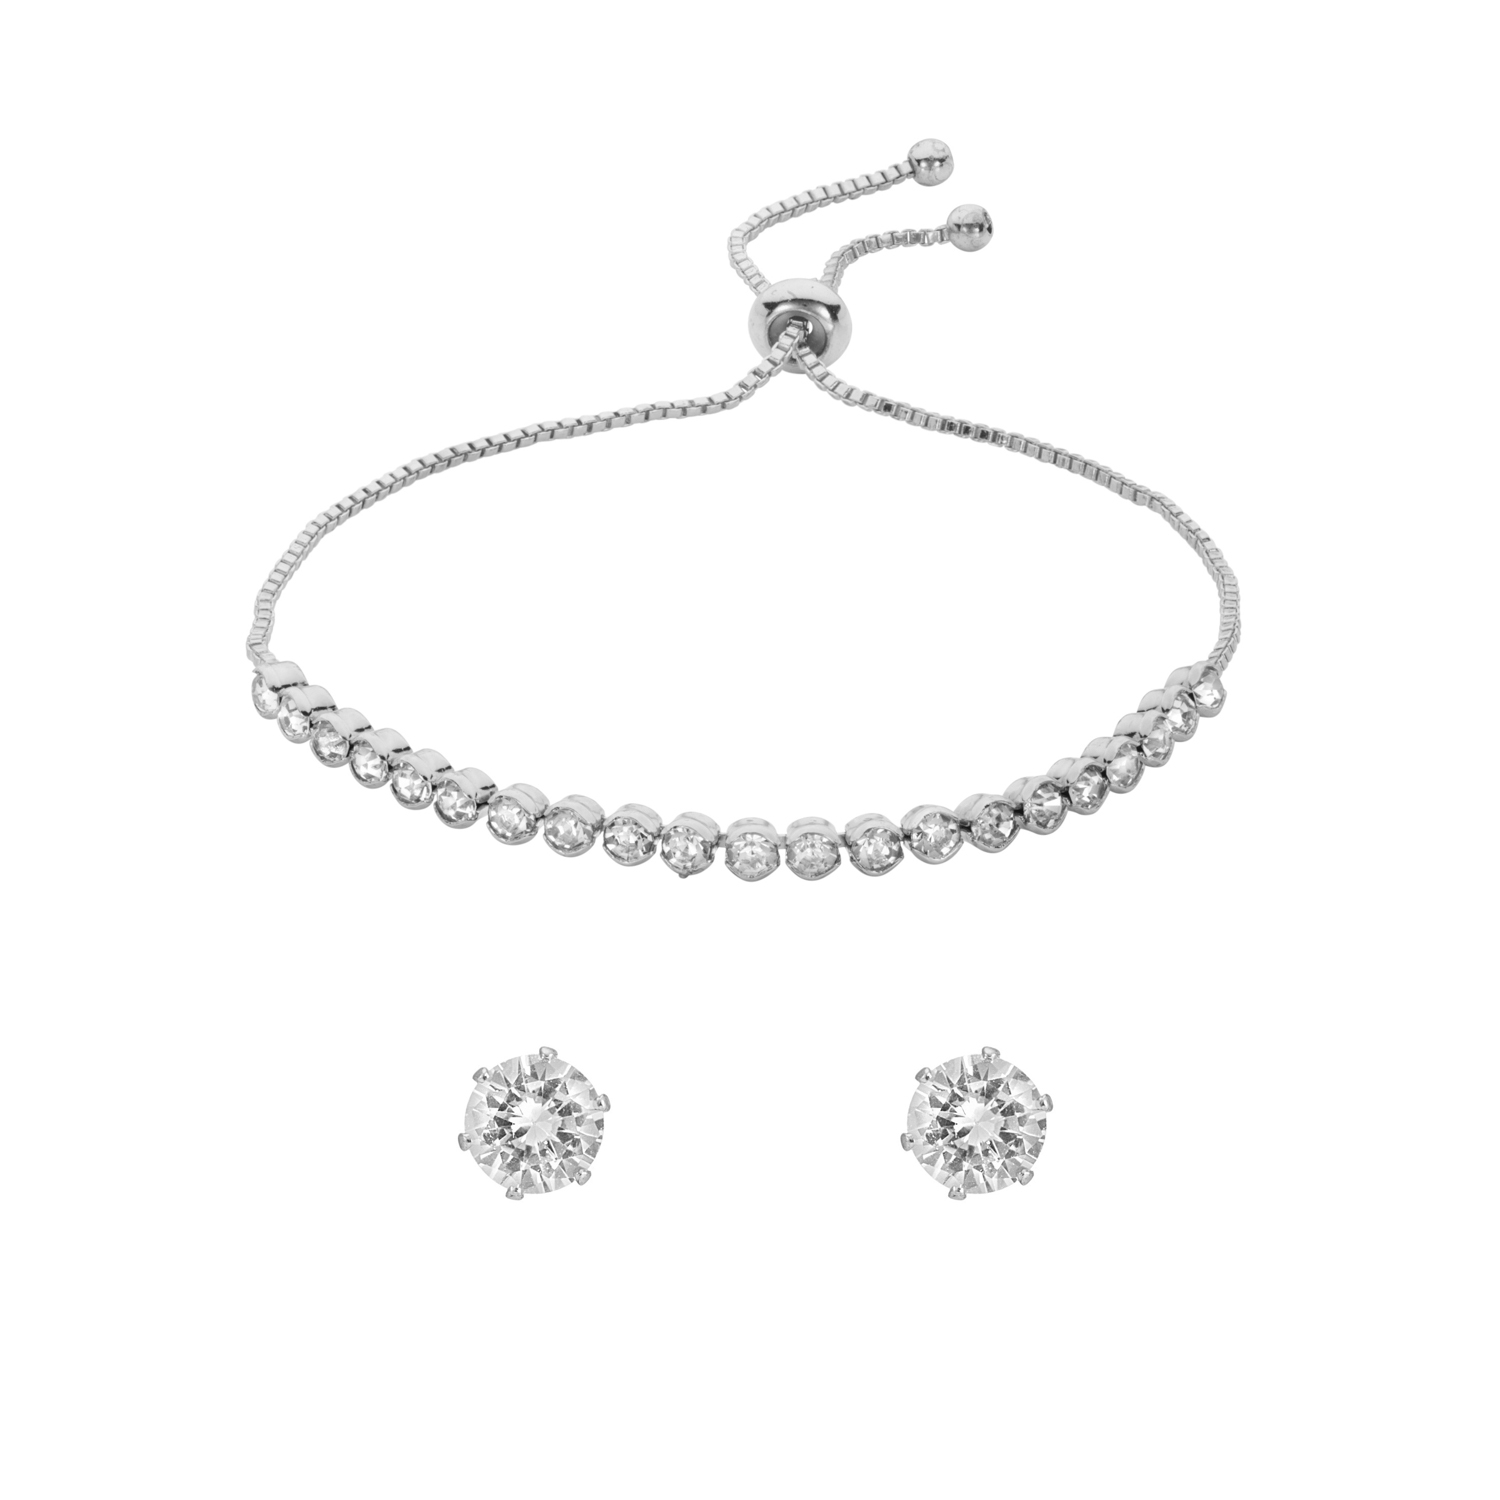 SILVER Capella Crystal Toggle Bracelet Gift Set